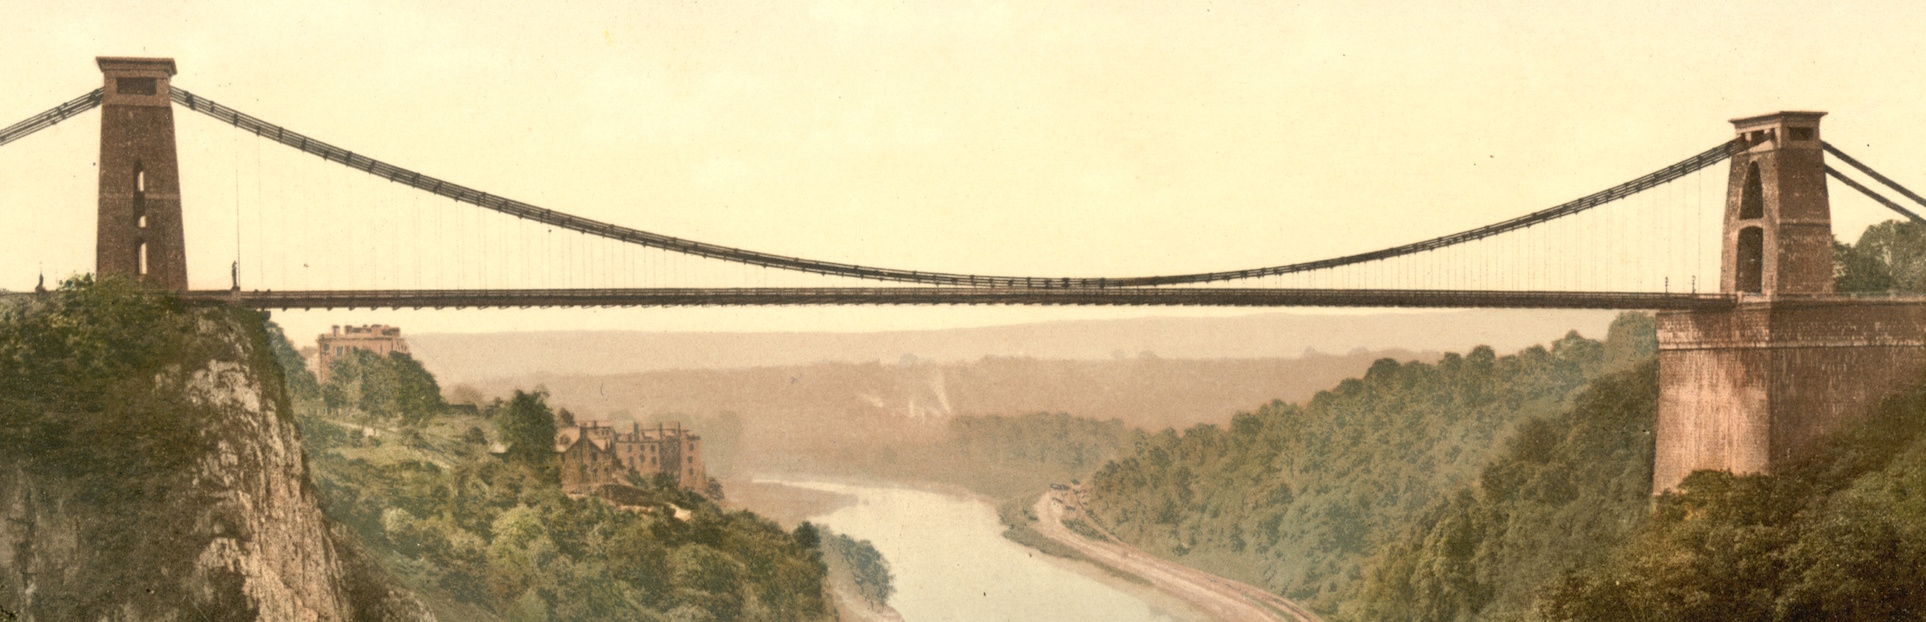 Clifton suspension bridge c1900 2